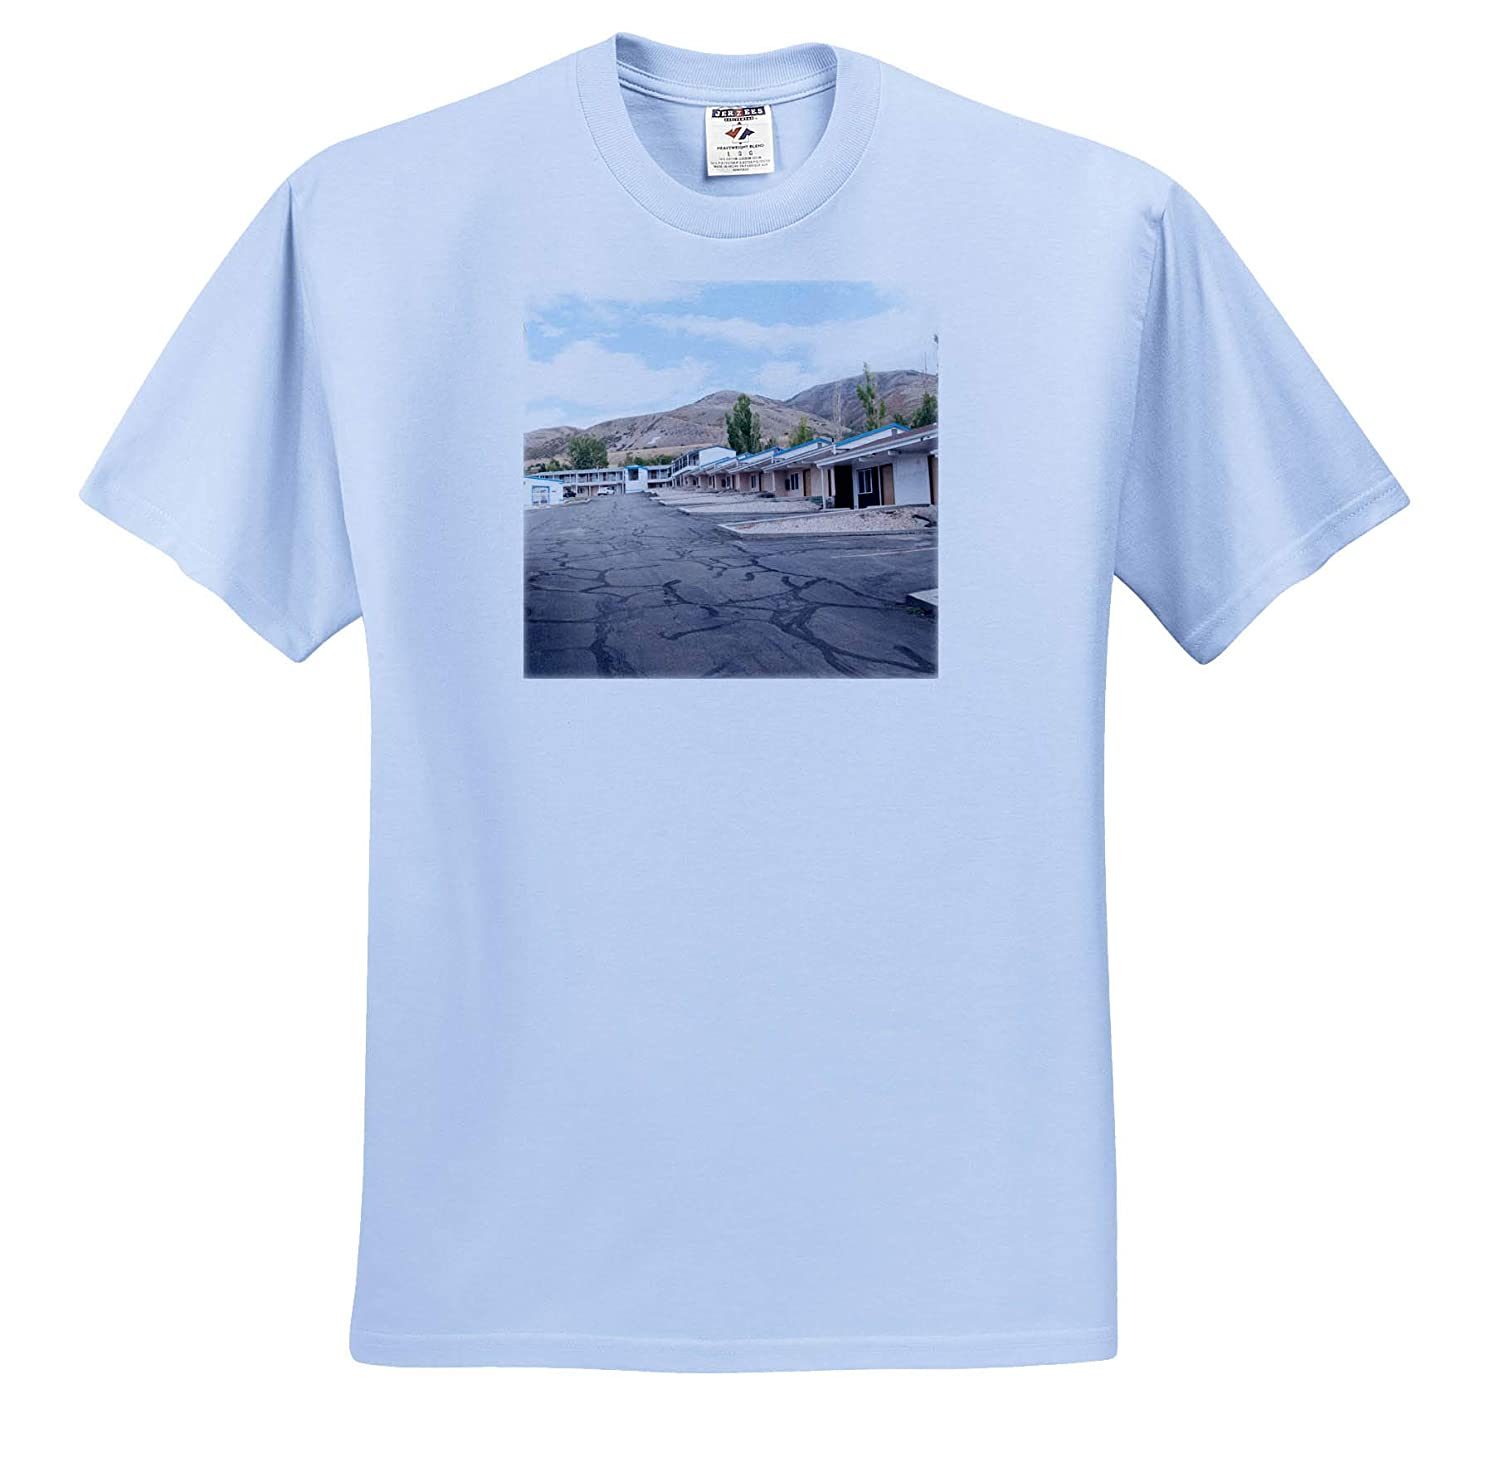 ts/_320073 A Hotel in Brigham City Utah All on Ground Level 3dRose Jos Fauxtographee- Motel Adult T-Shirt XL